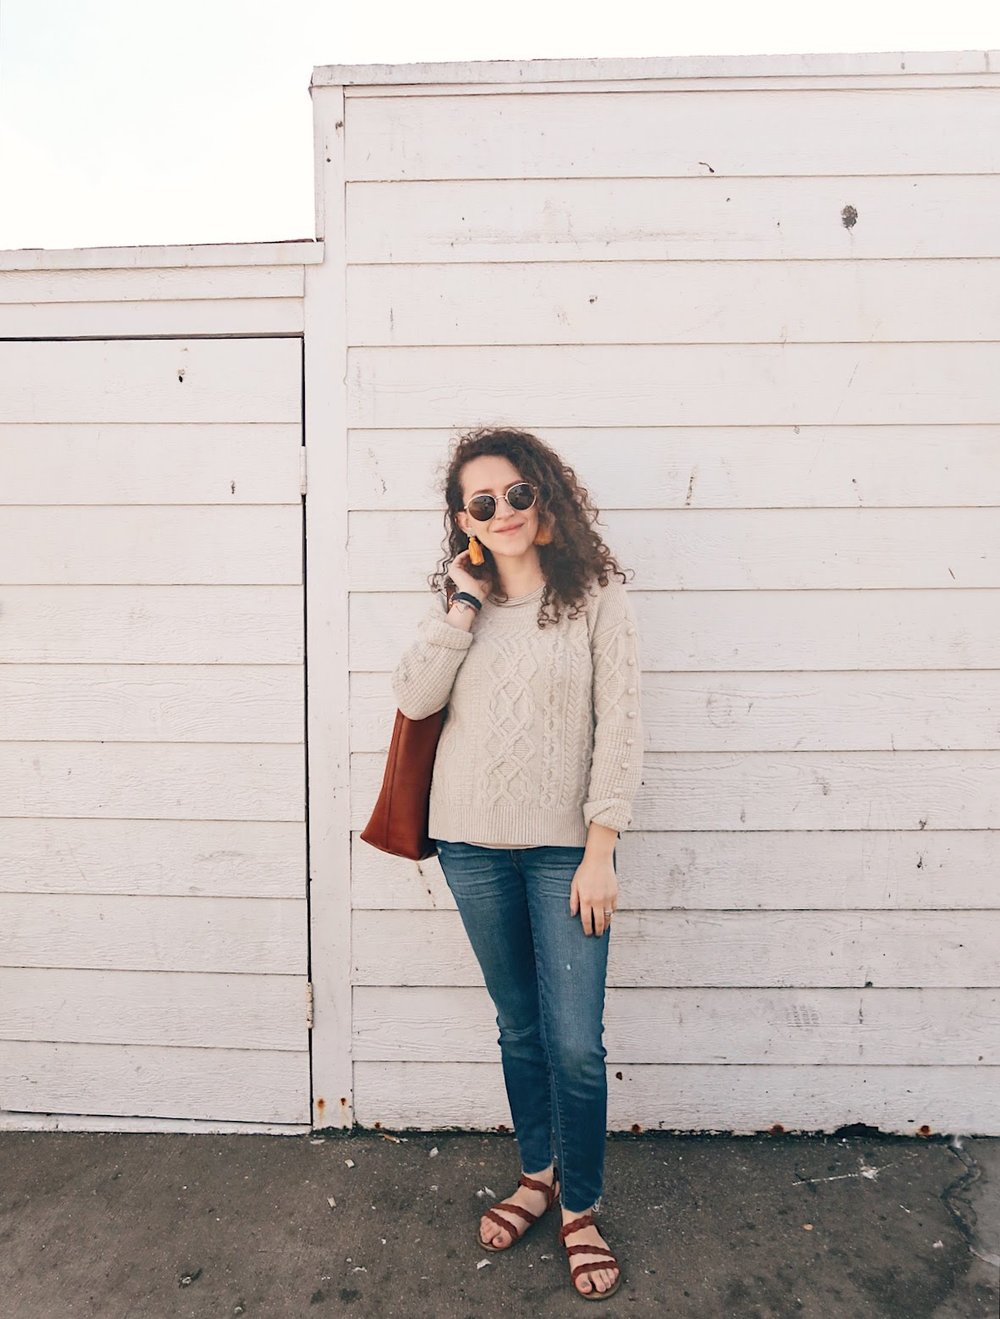 a winter beach outfit -- neutral sweater, midwash jeans, braided sandals and tassel earrings